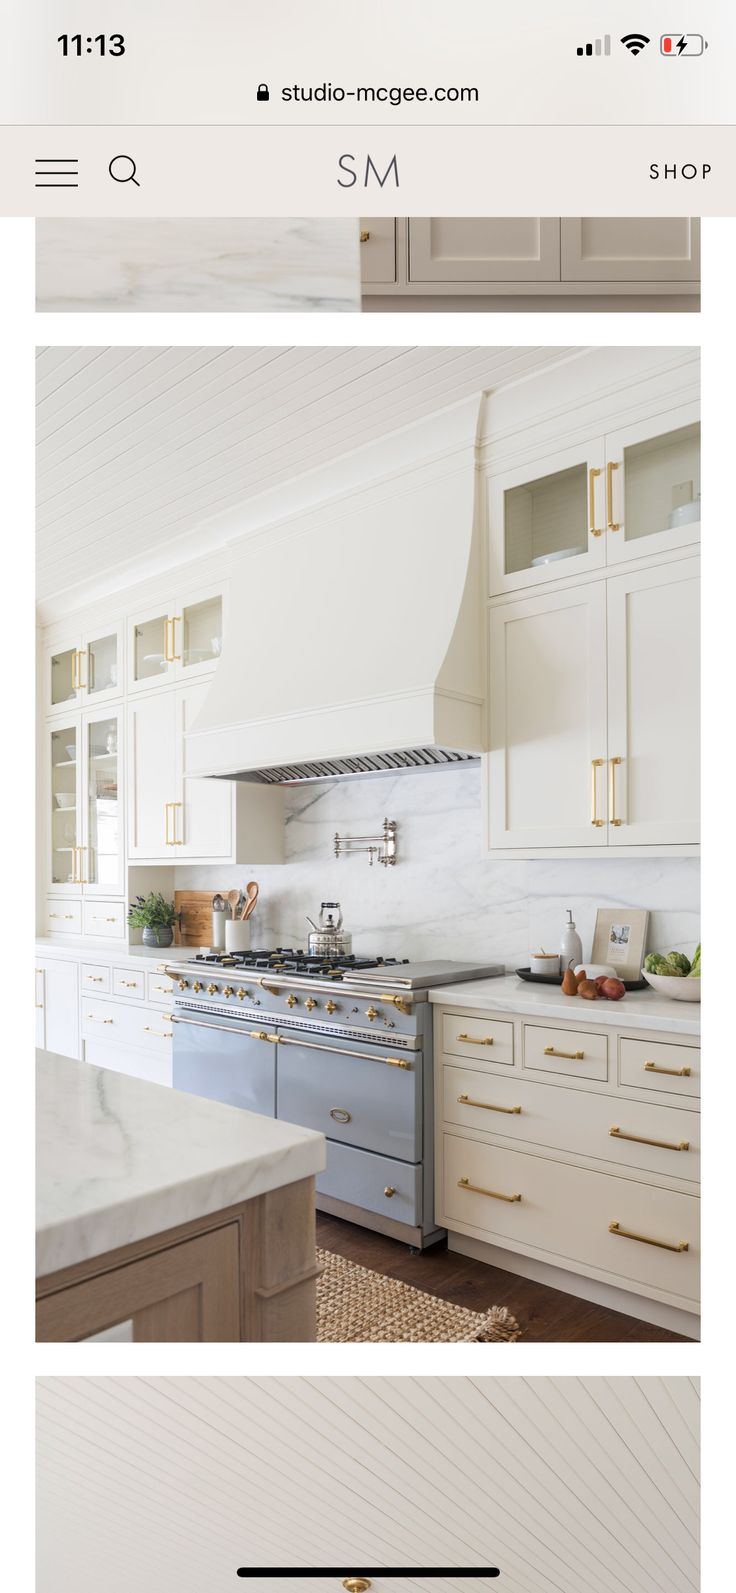 Pin By Elysa Broido On Interior Inspiration Painted Kitchen Cabinets Colors Home Decor Kitchen Kitchen Remodel Small